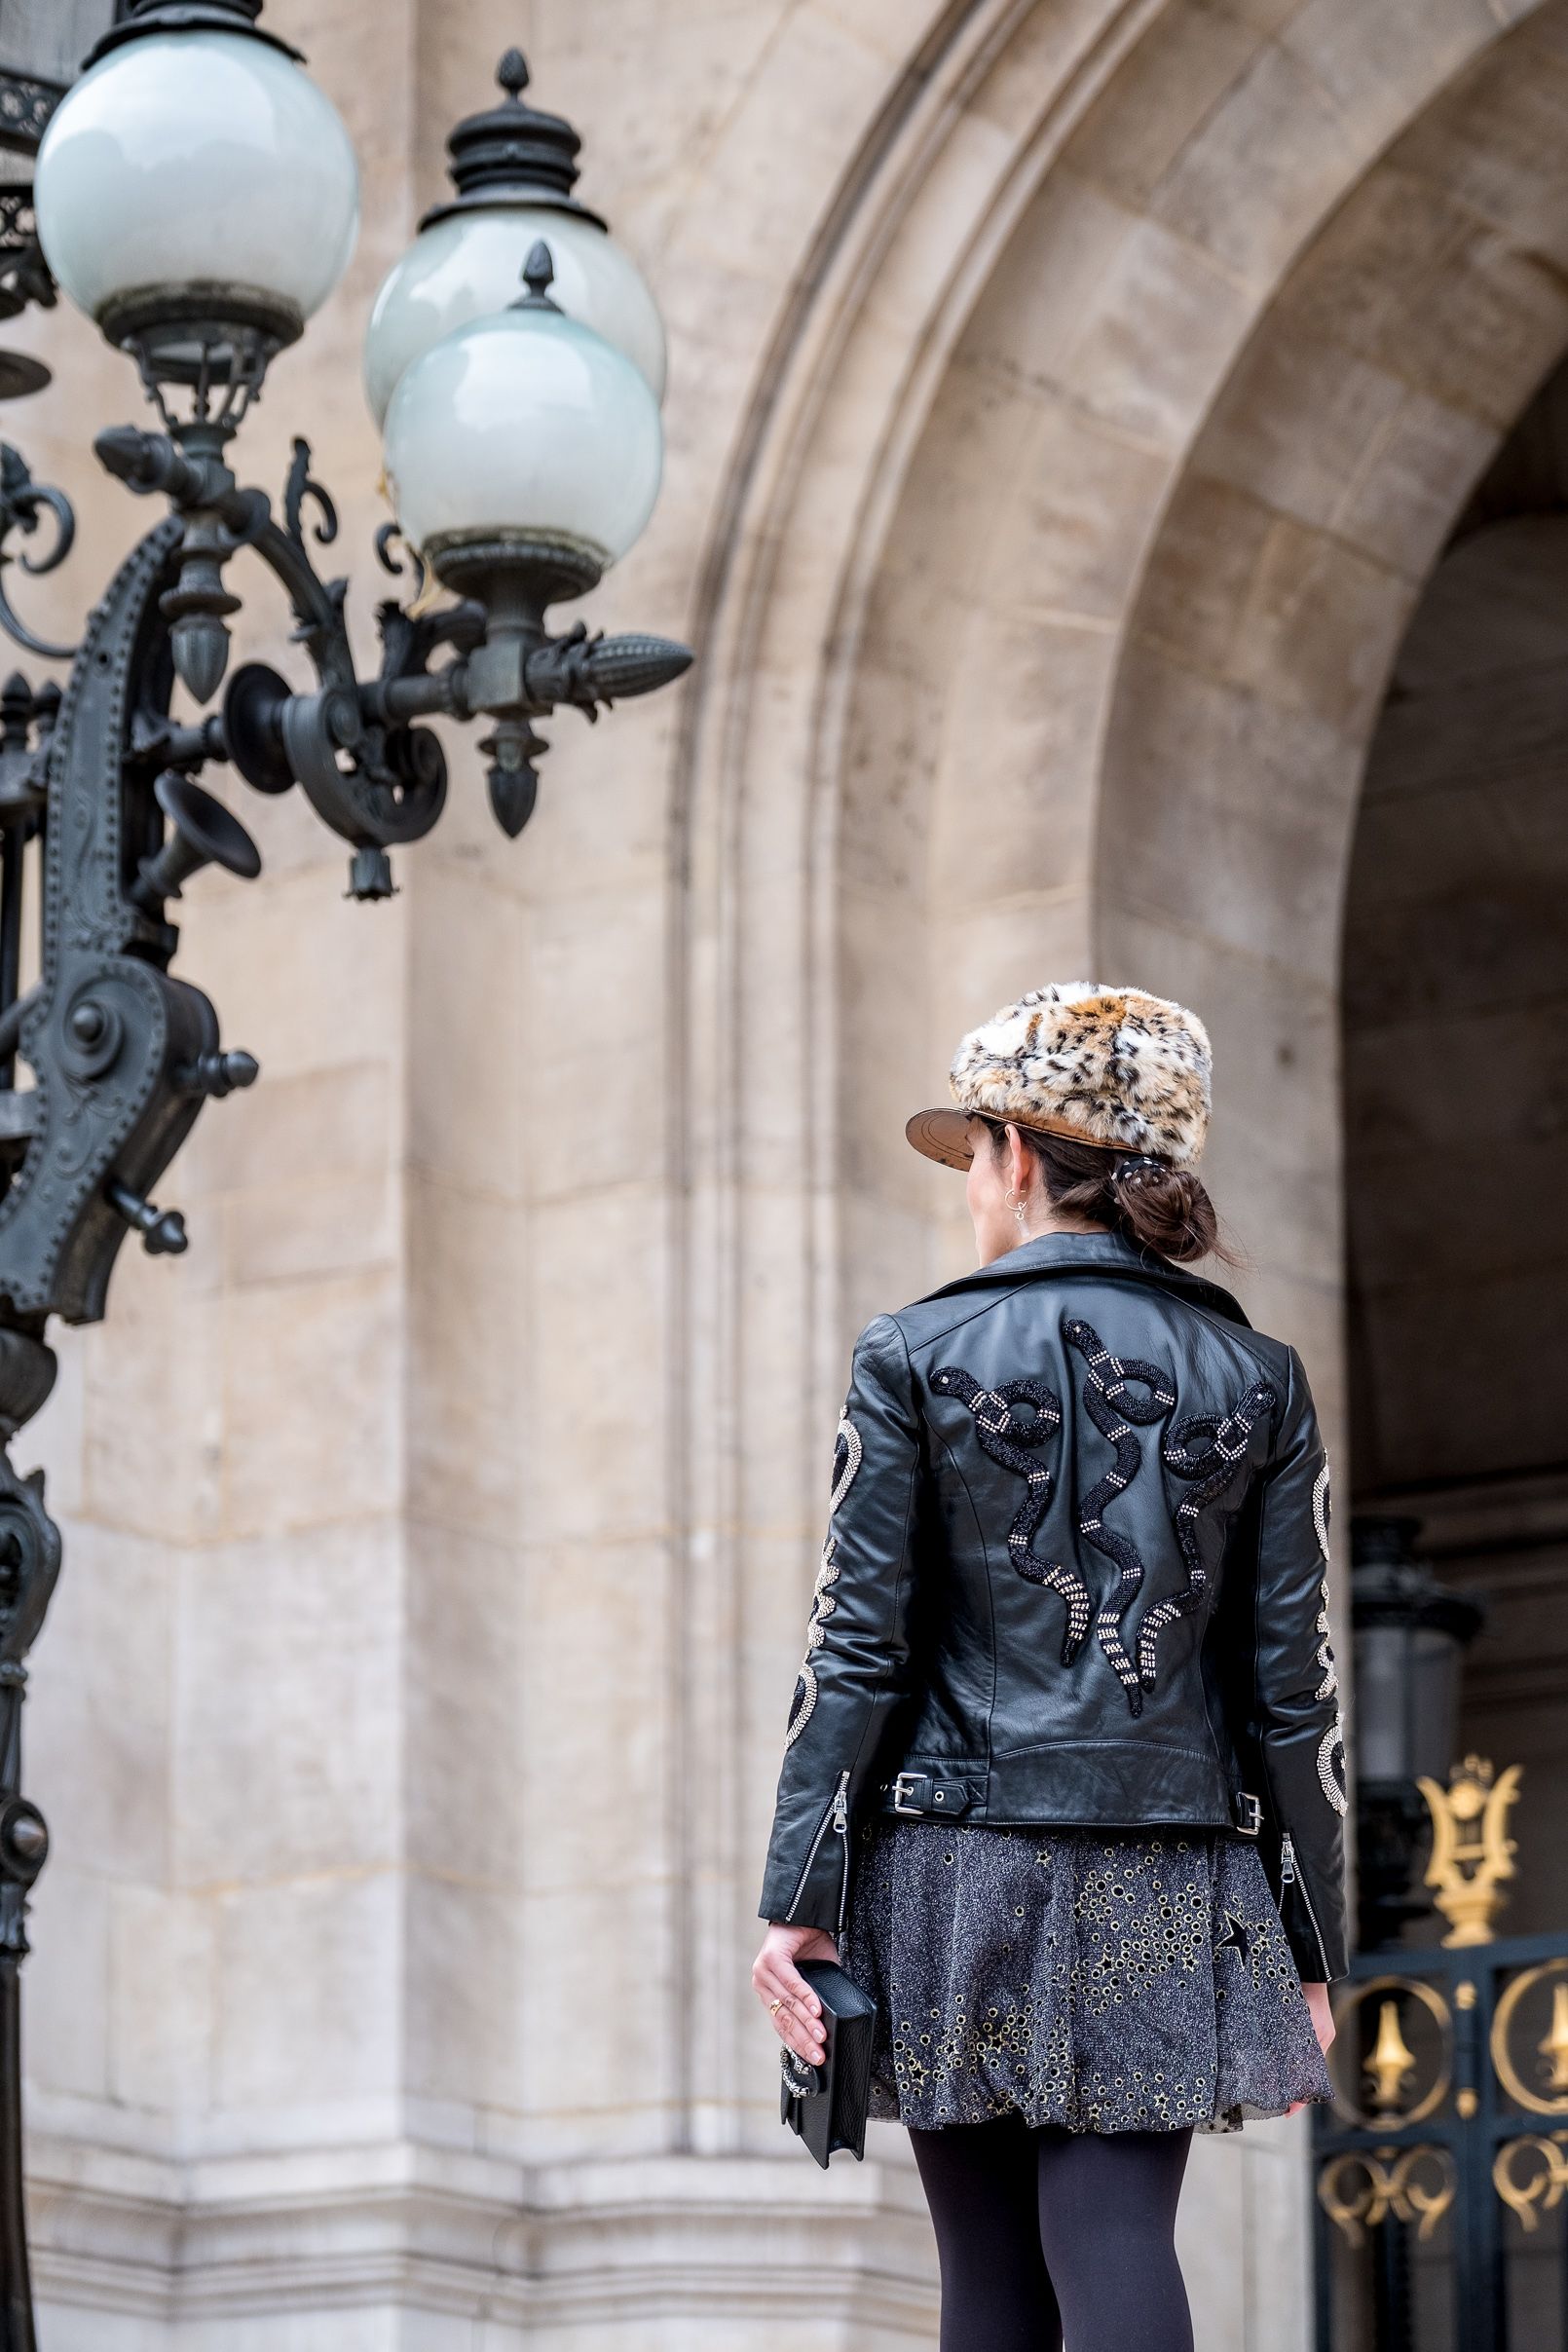 Le Fashionaire faux fur leopard beret gold old black leather embroidered crystal snakes apples uterque jacket glitter gray gold stars zara dress 4488 EN faux fur leopard beret gold old black leather embroidered crystal snakes apples uterque jacket glitter gray gold stars zara dress 4488 EN